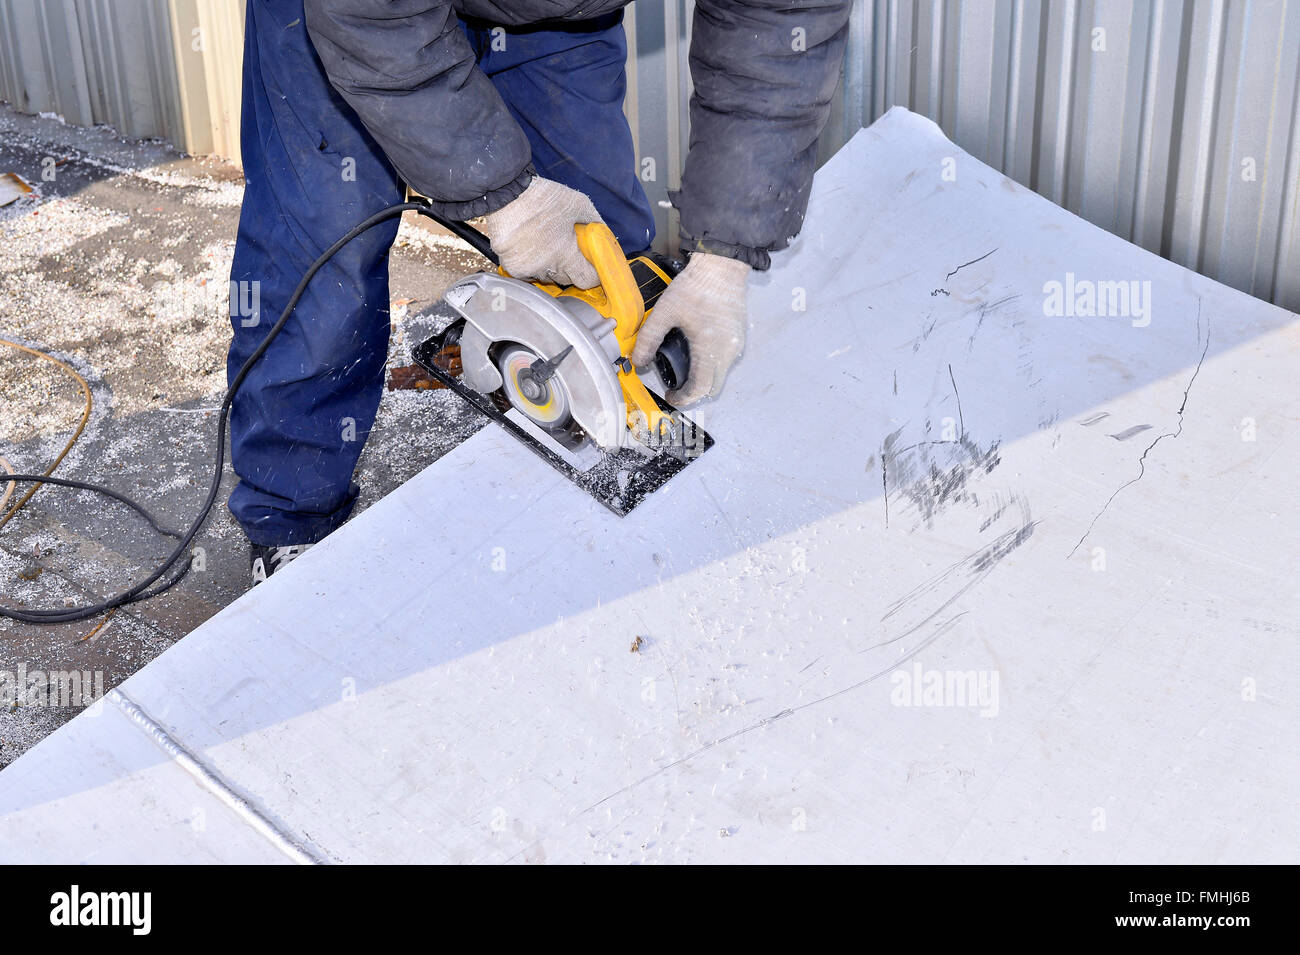 Electric hand tool in the hands of the worker, cutting sheet metal. - Stock Image